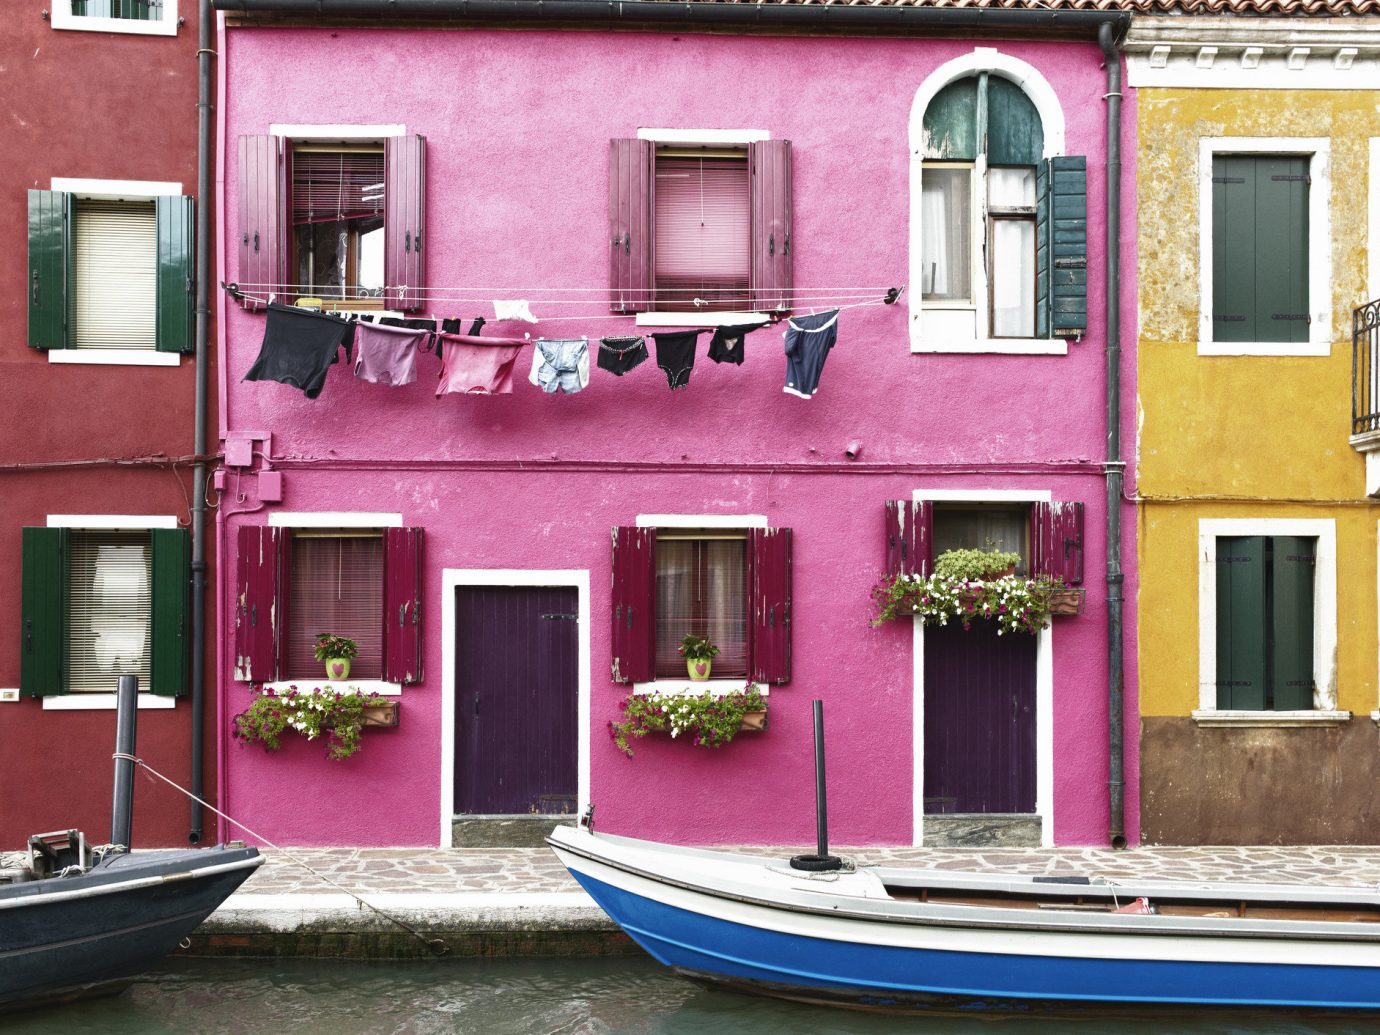 Offbeat outdoor color house pink home facade vehicle interior design Balcony old Boat colored